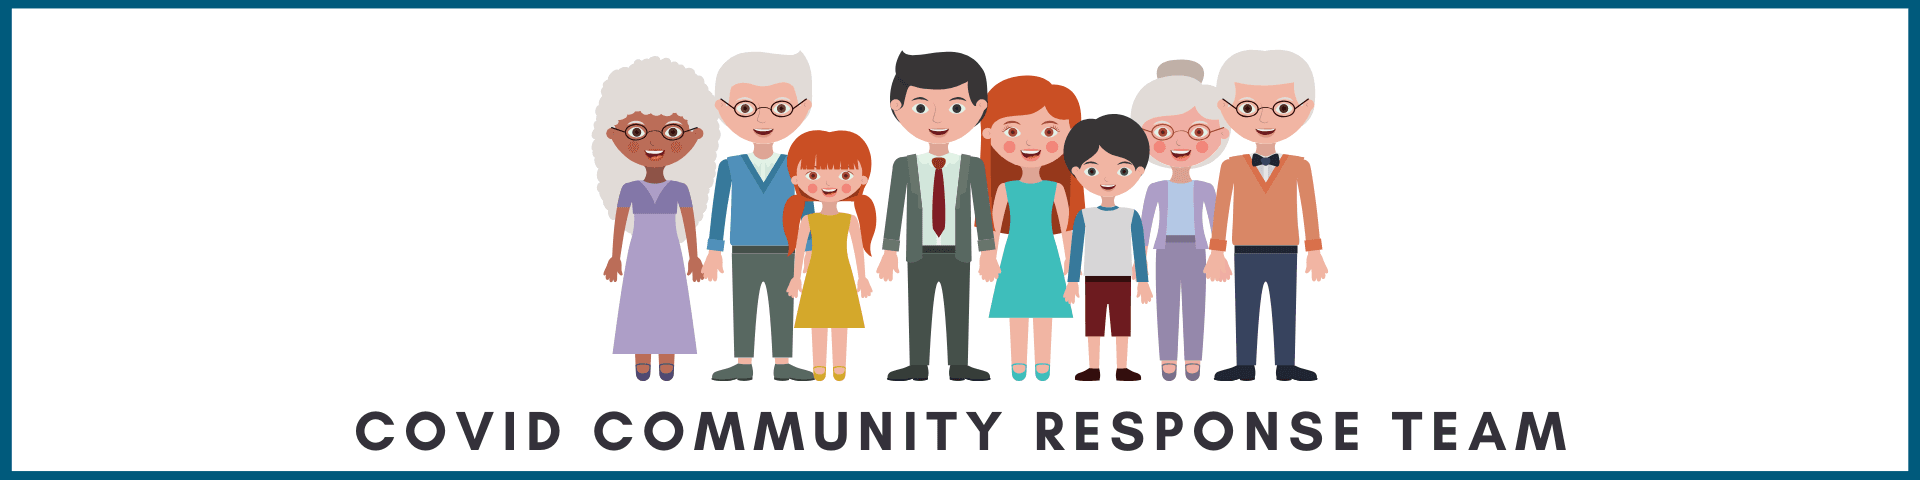 community response team - WEBSITE FINAL